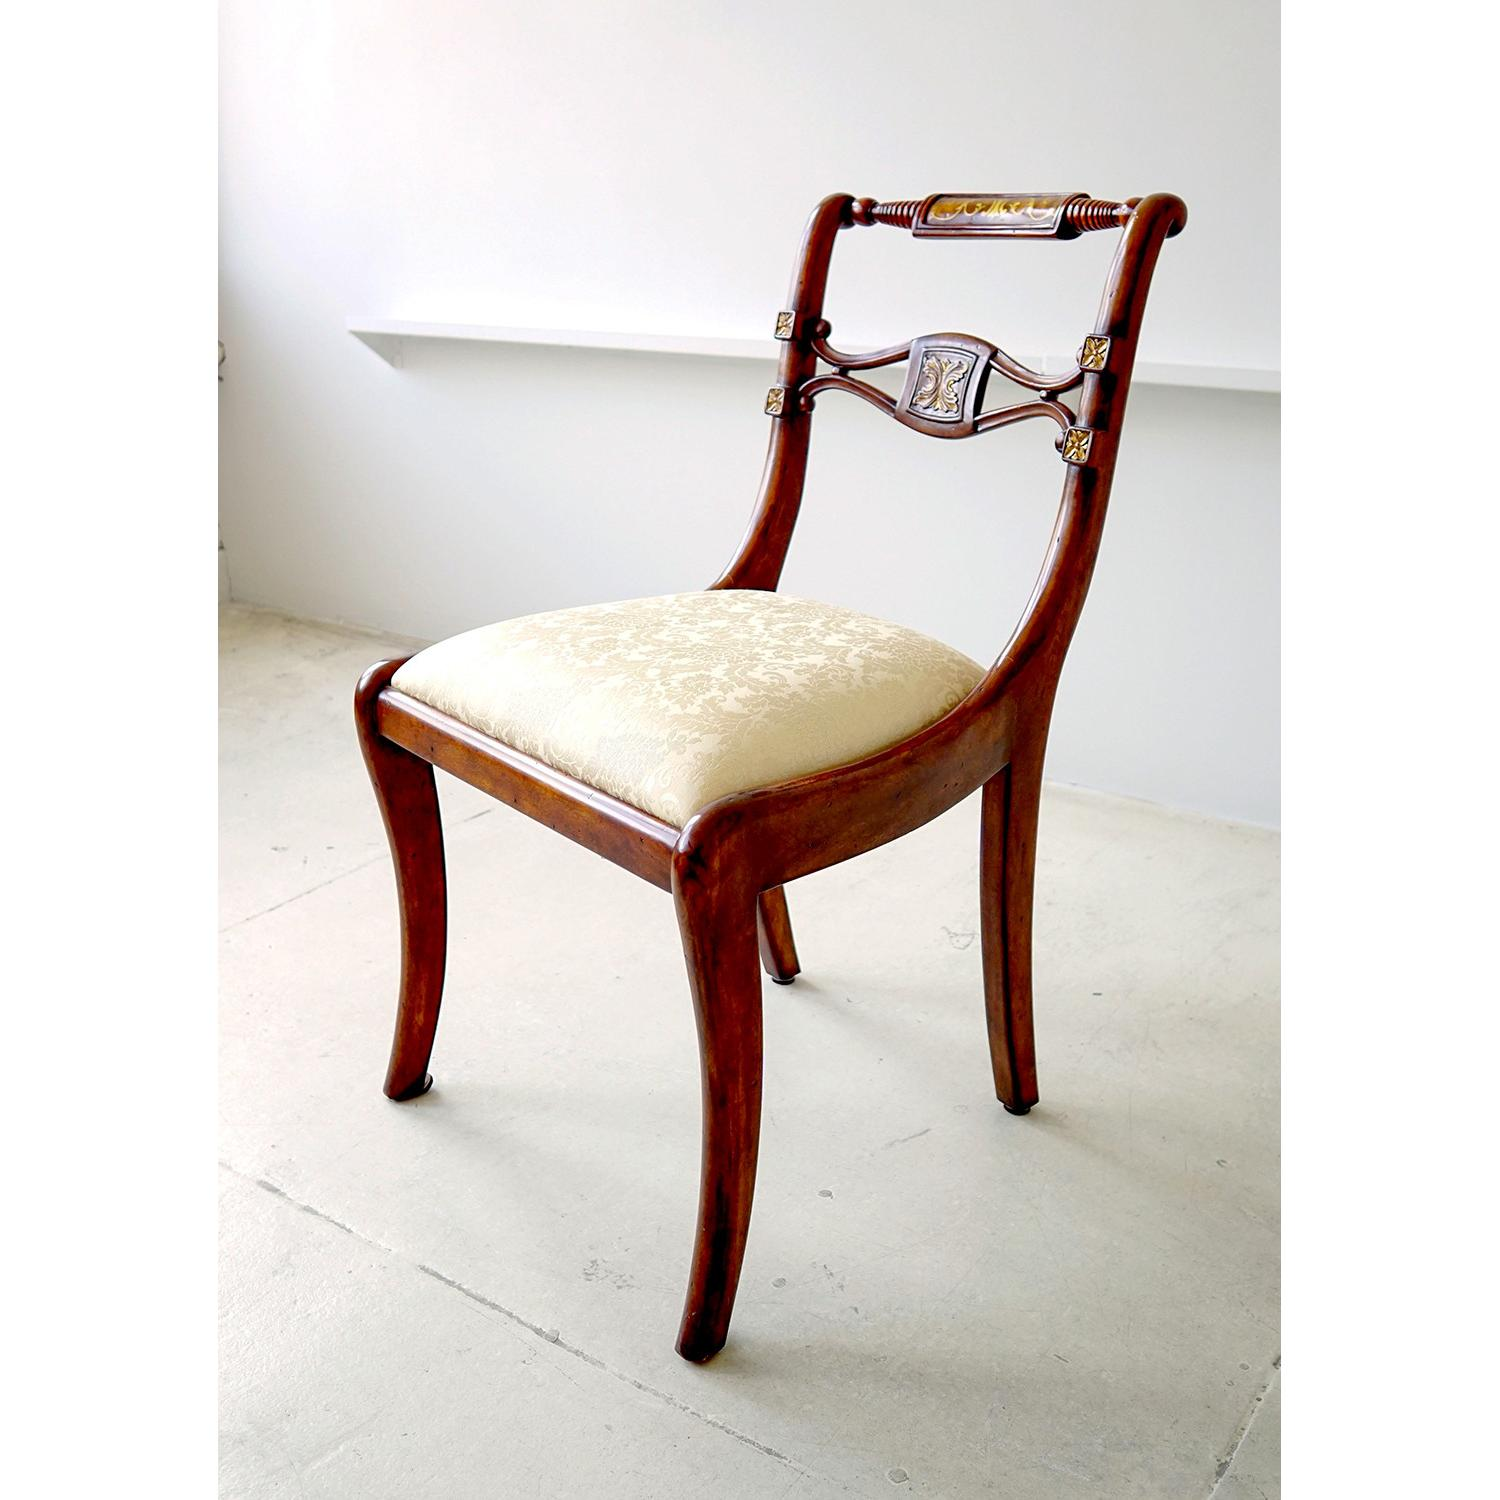 Theodore Alexander Side Chair - image-1